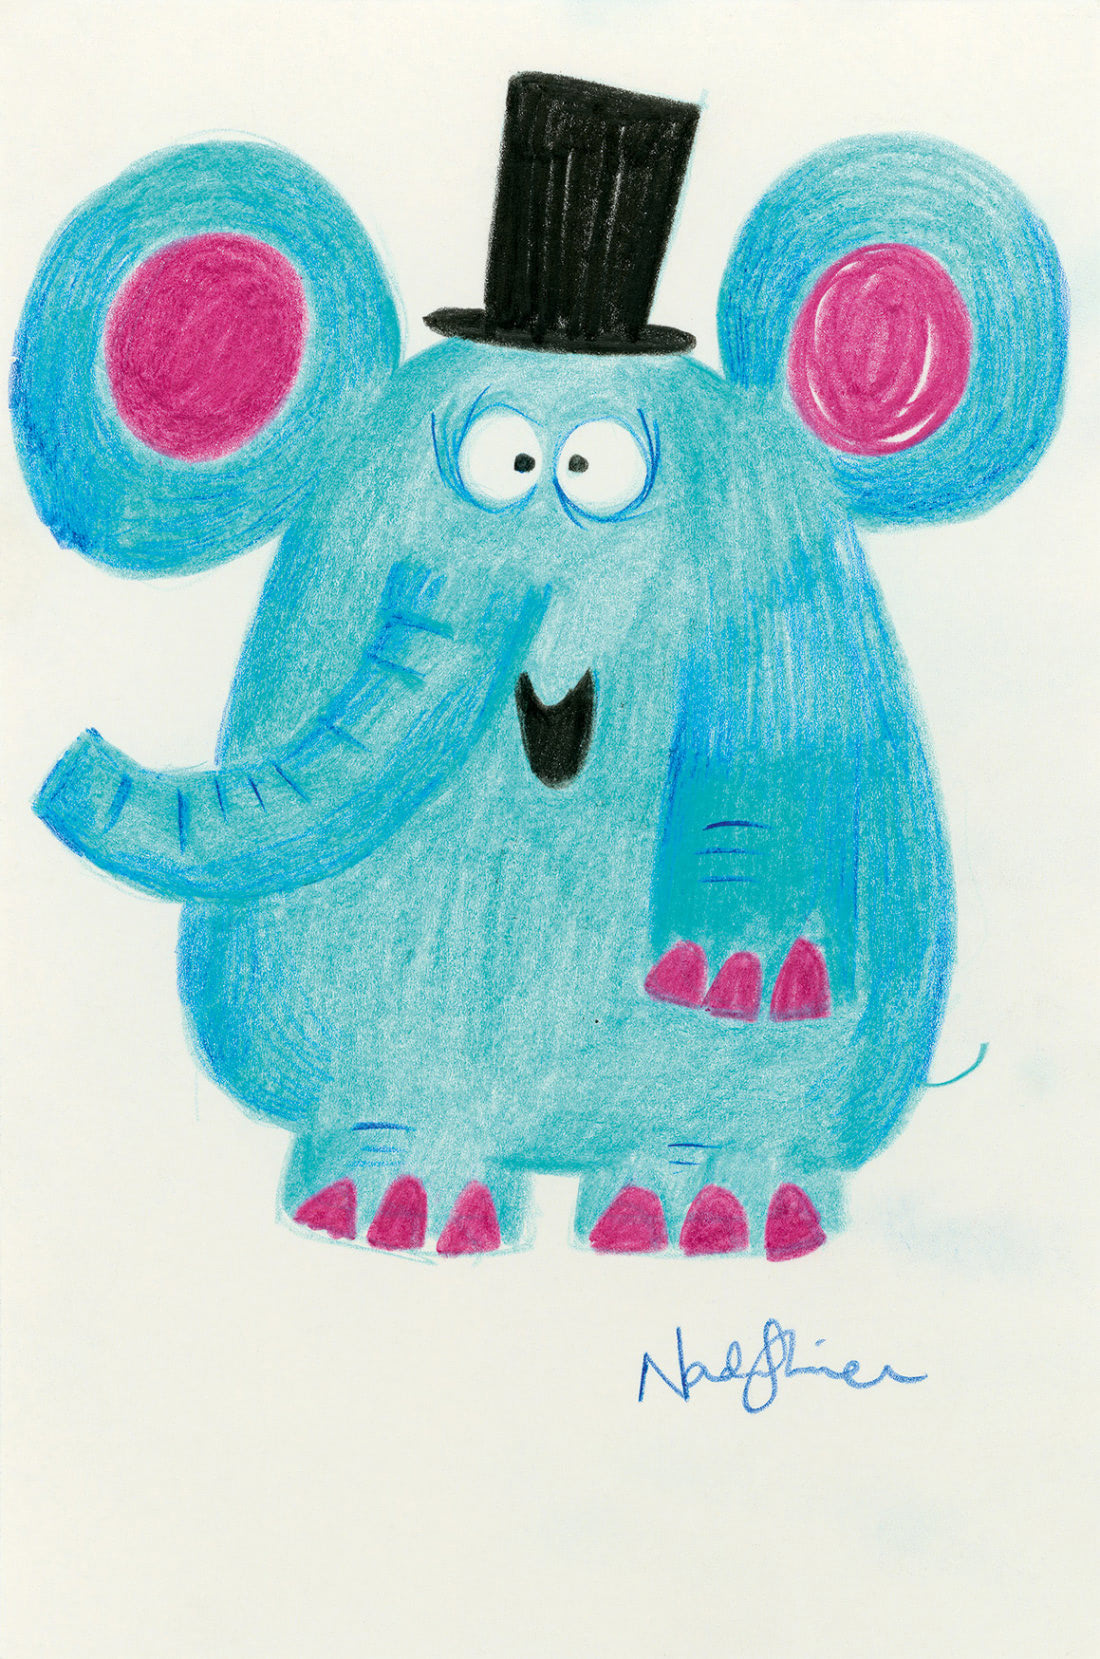 Elephant (Nadia Shireen Patronus on a Postcard)